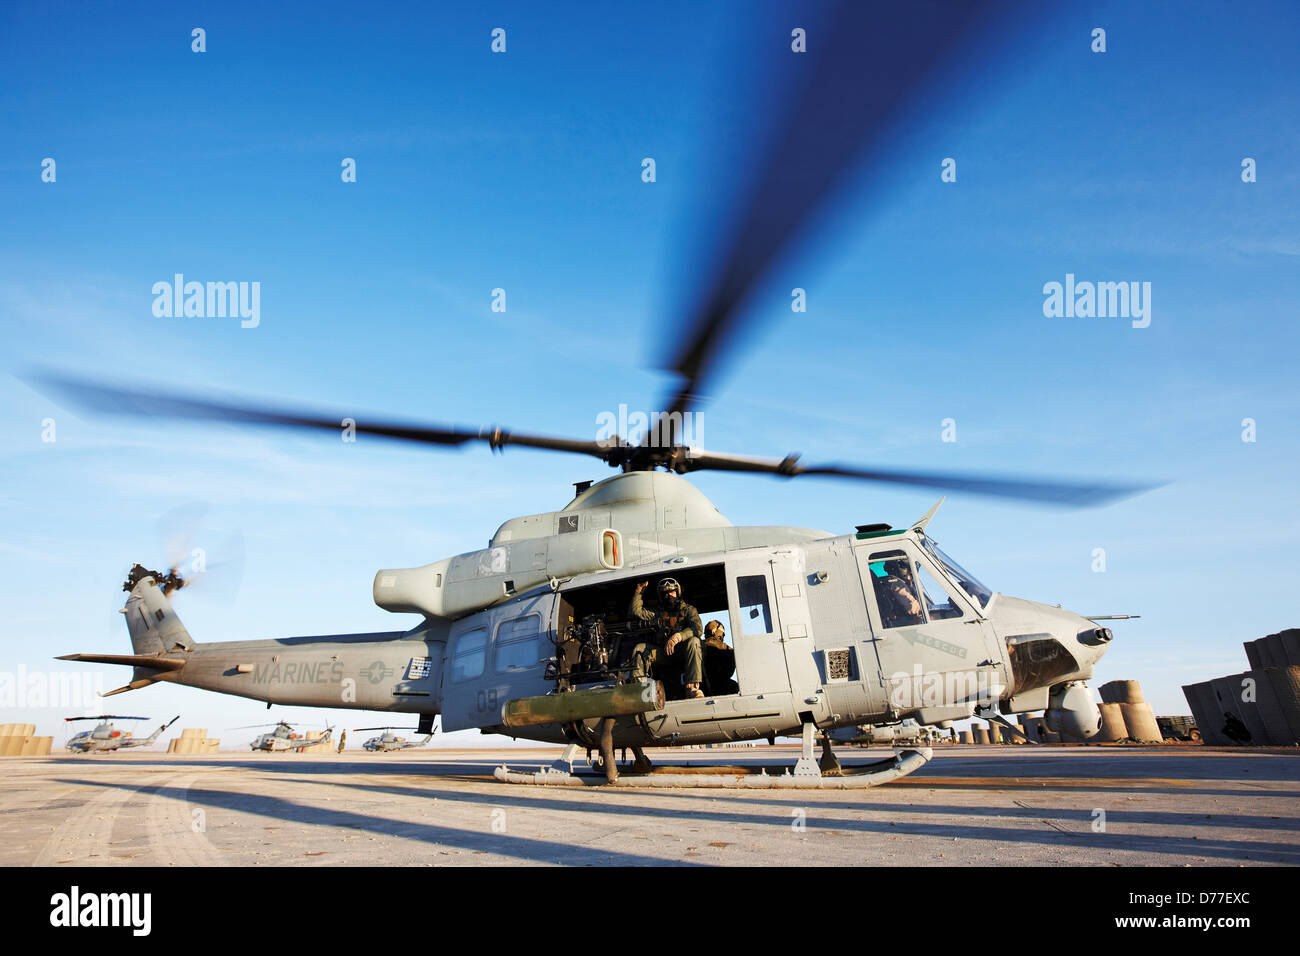 United States Marine Corps UH-1Y Venom helicopter prepares to launch on combat operation in Helmand Province Afghanistan - Stock Image